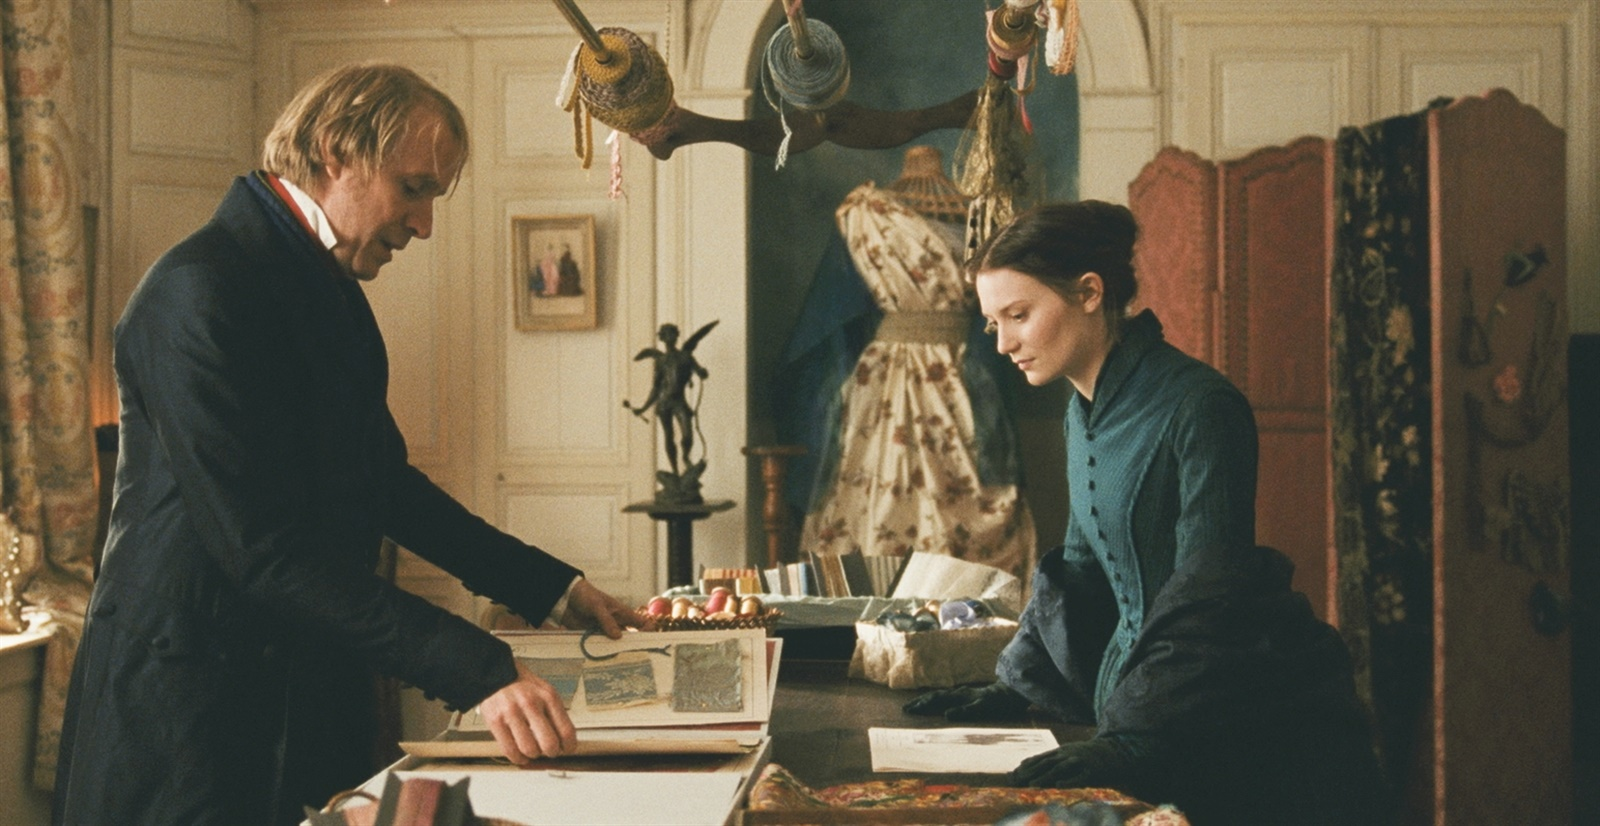 the role of homais in madame bovary View and download madame bovary essays examples also discover topics, titles, outlines, thesis statements, and conclusions for your madame bovary essay.